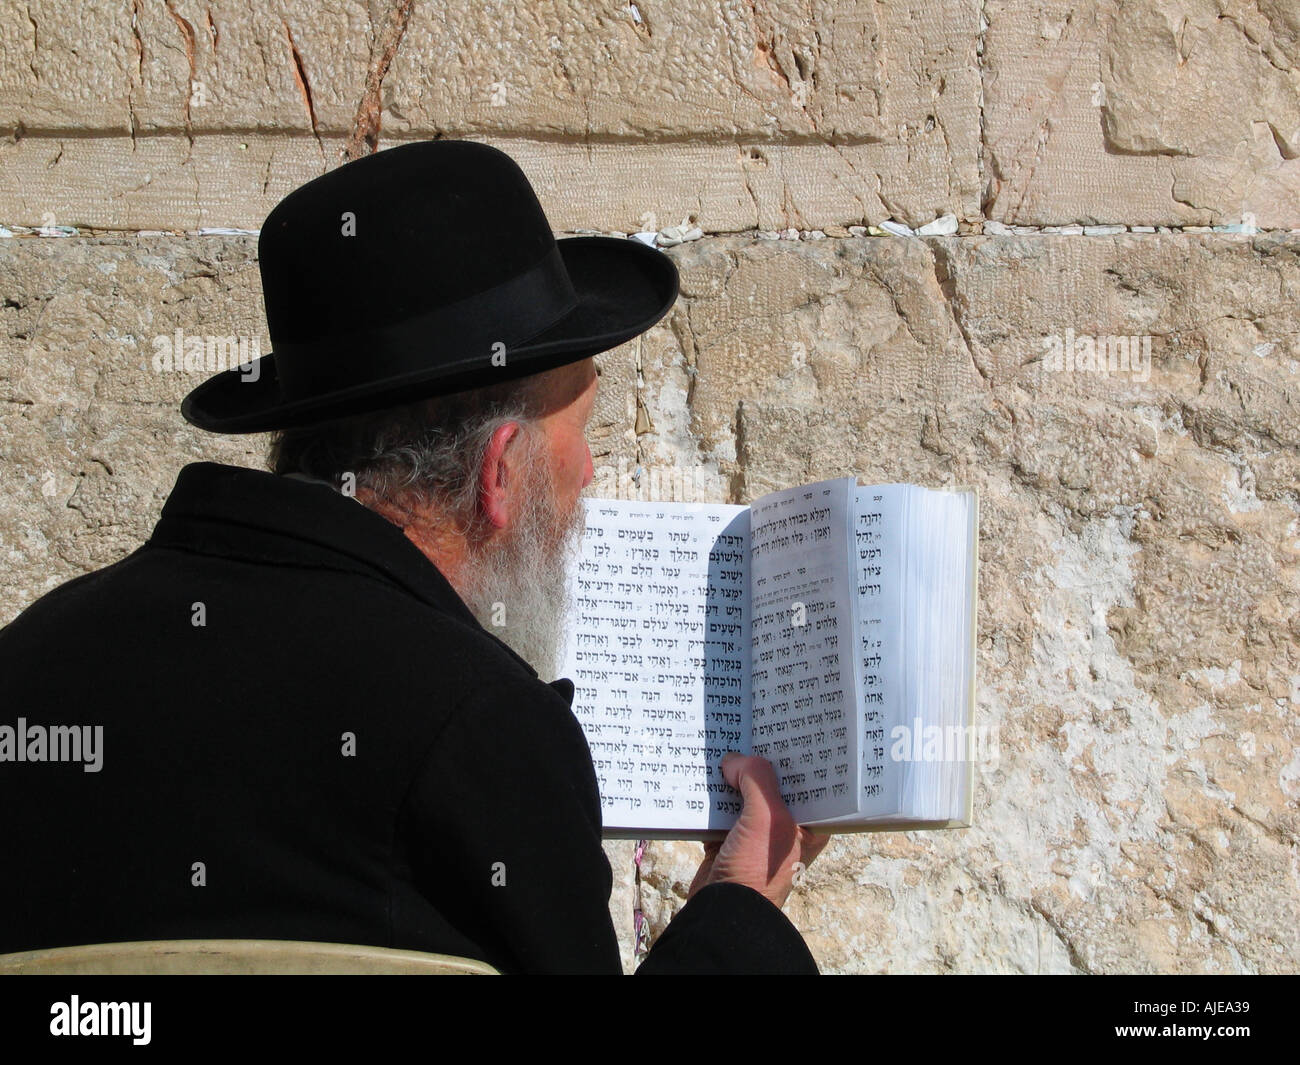 An Orthodox Jew reading Siddur prayer book beside the Western or Wailing Wall in the old city East Jerusalem Israel - Stock Image